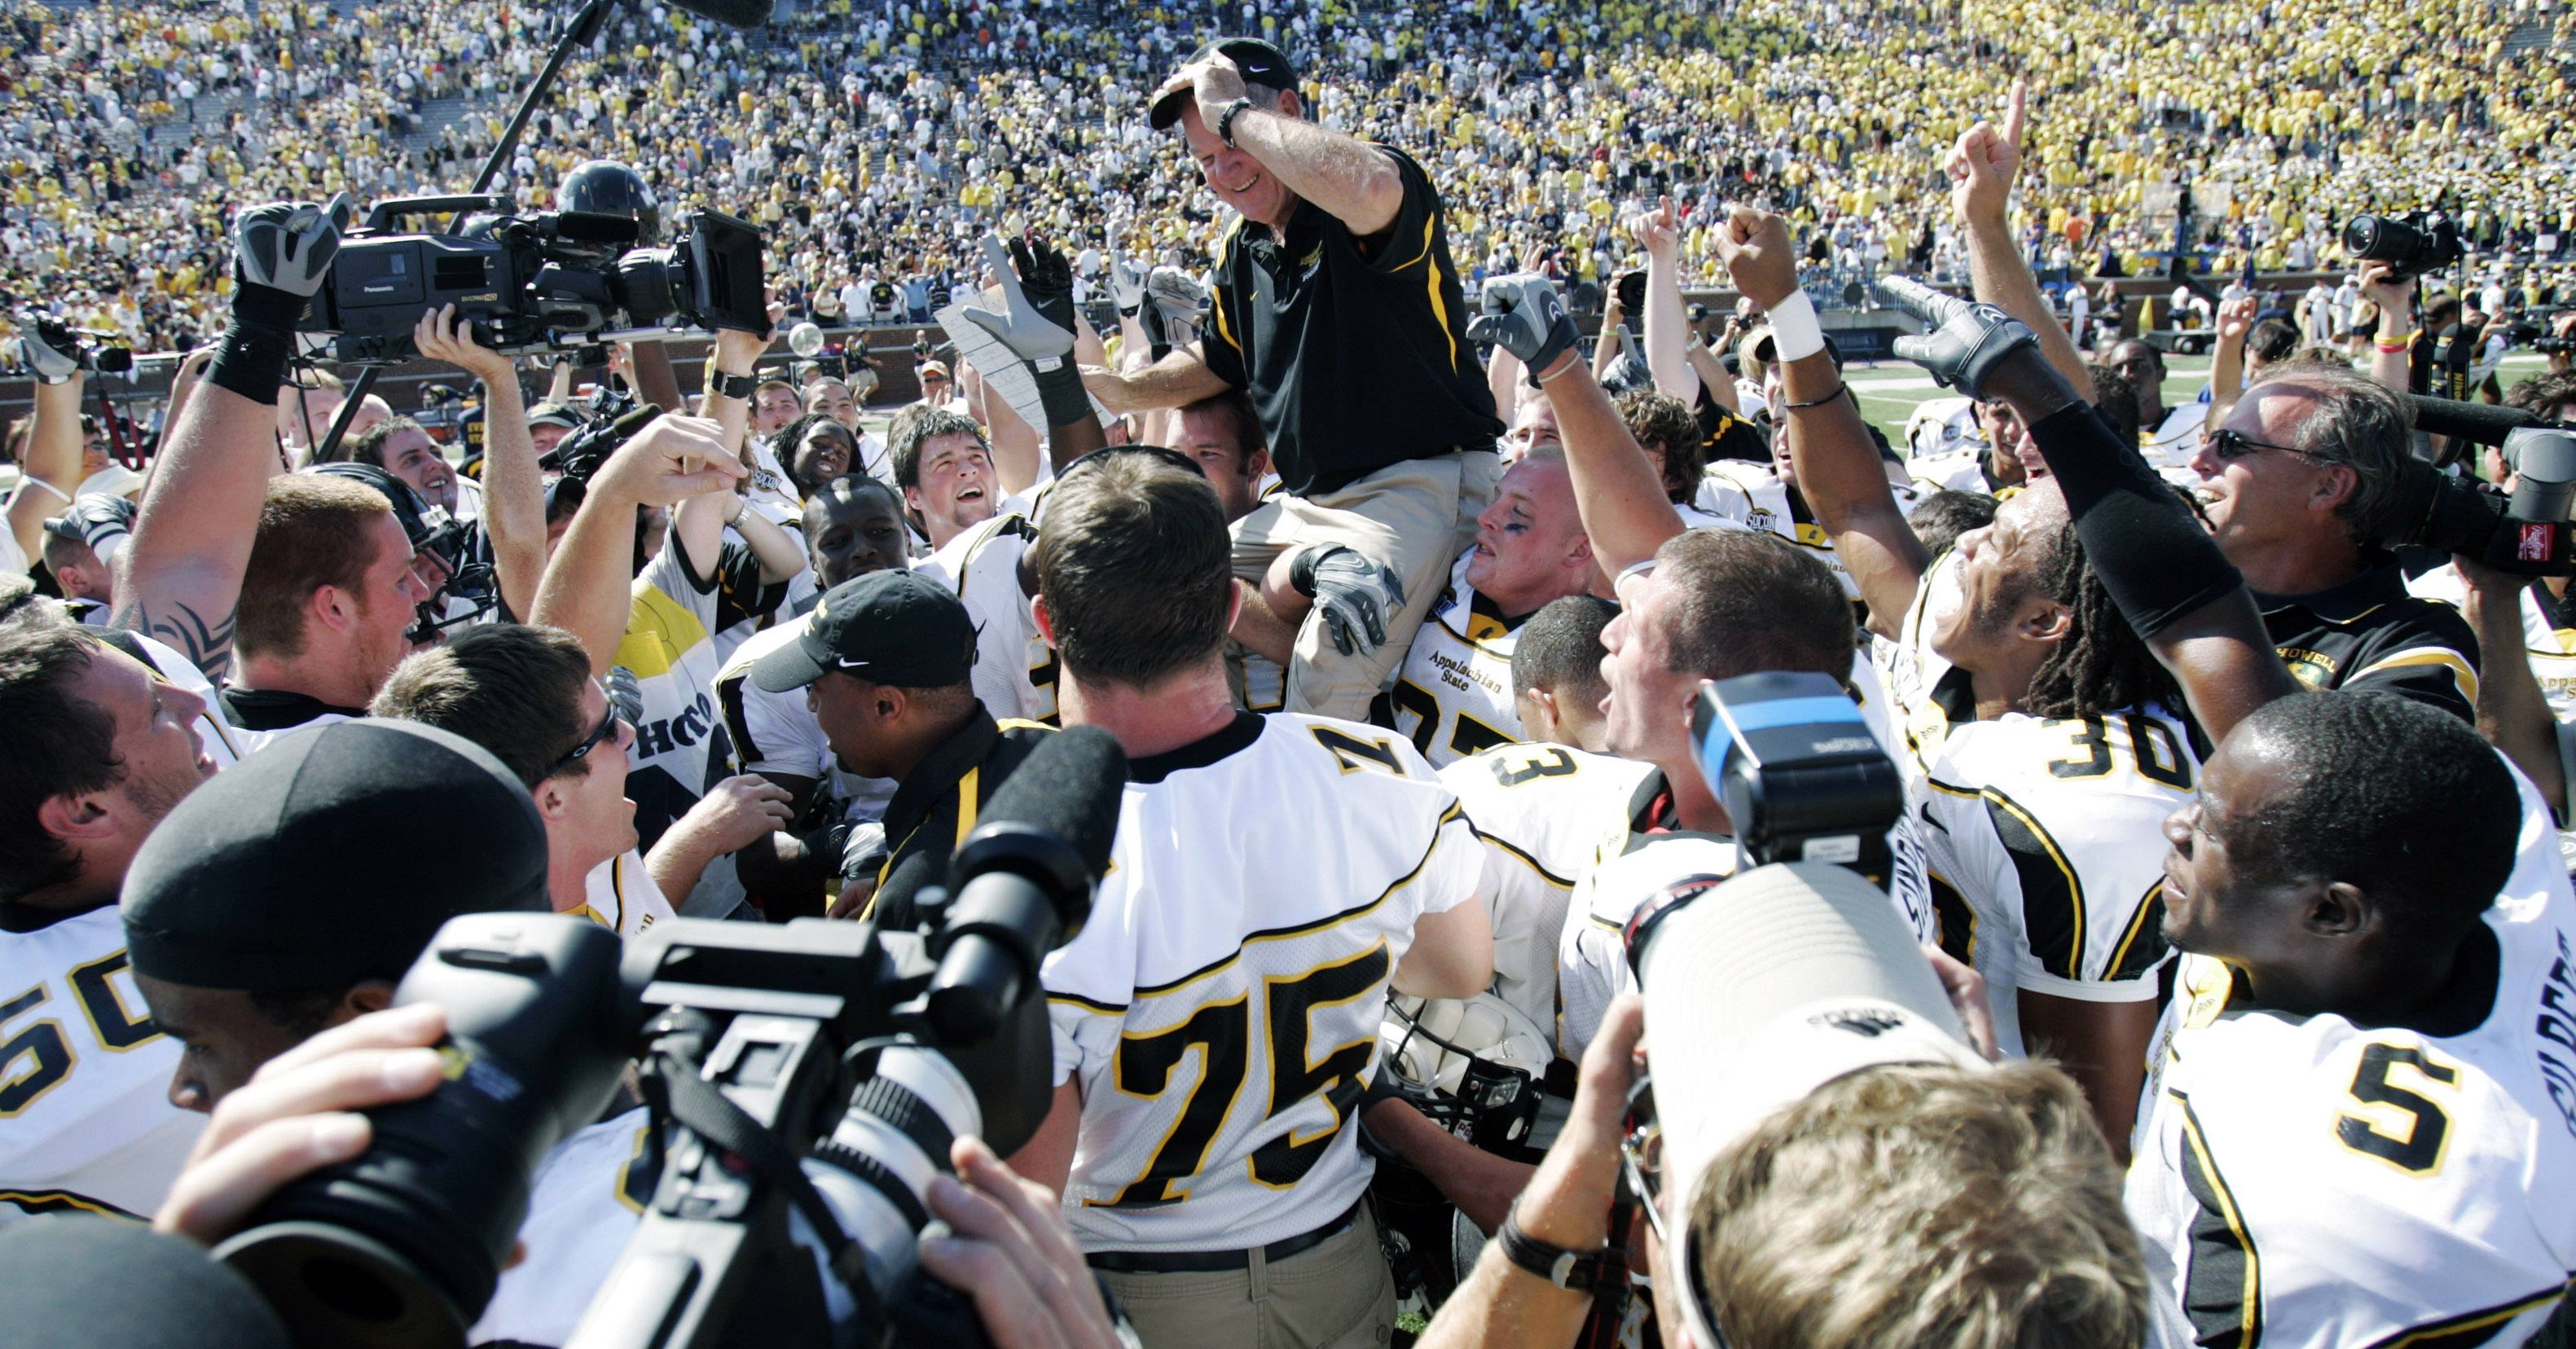 Appalachian State players carry coach Jerry Moore off the field after they upset No. 5 Michigan 34-32 in Ann Arbor.